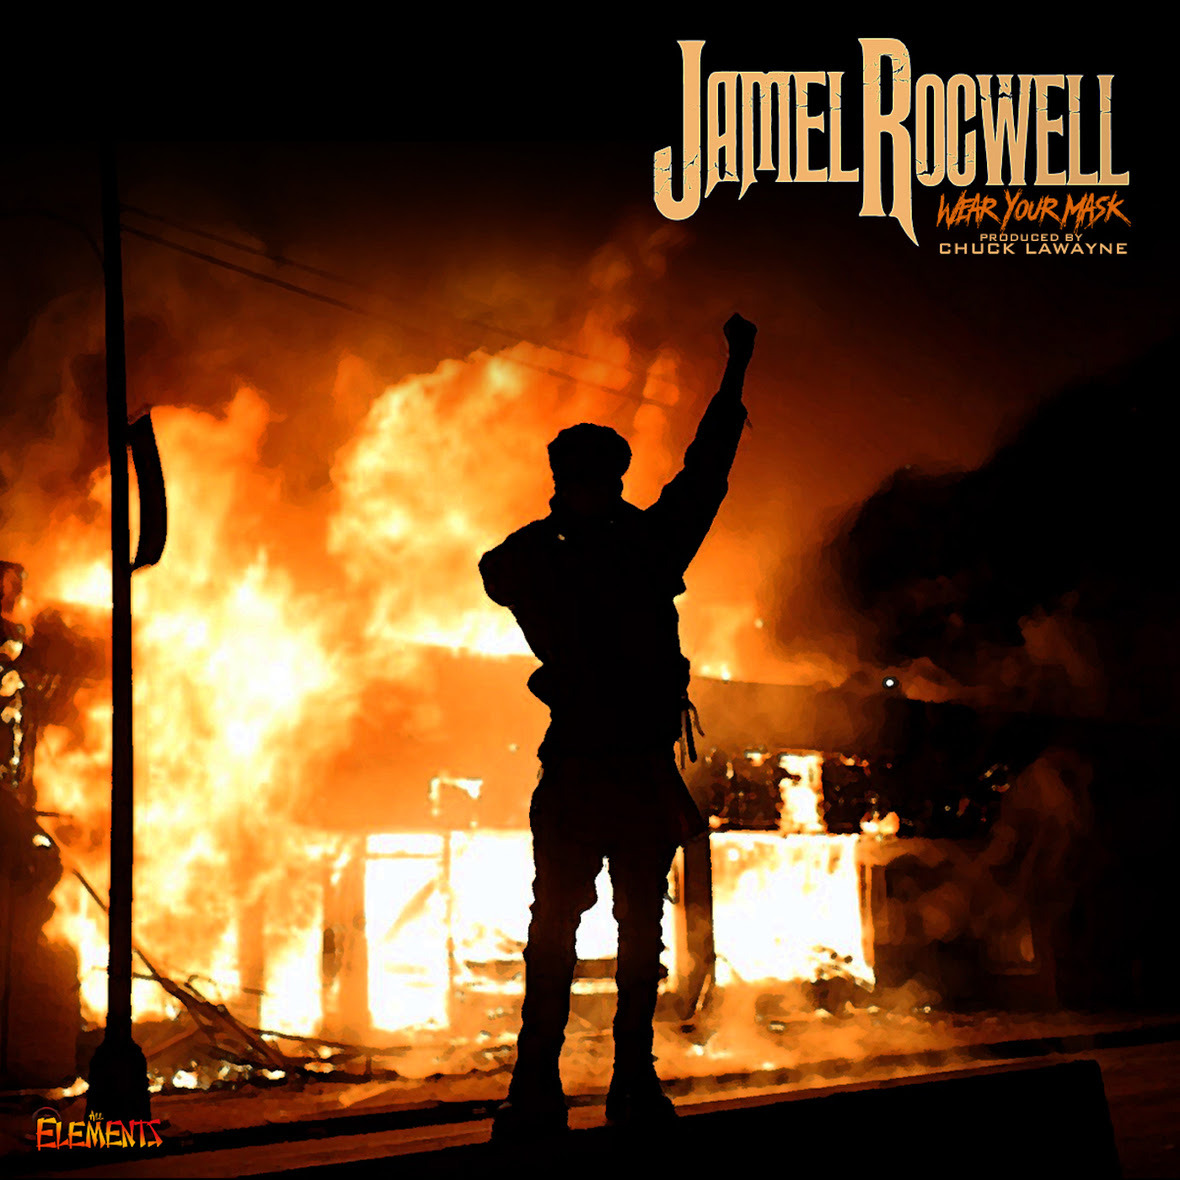 Jamel Rocwell - Wear Your Mask (Official Music Video)